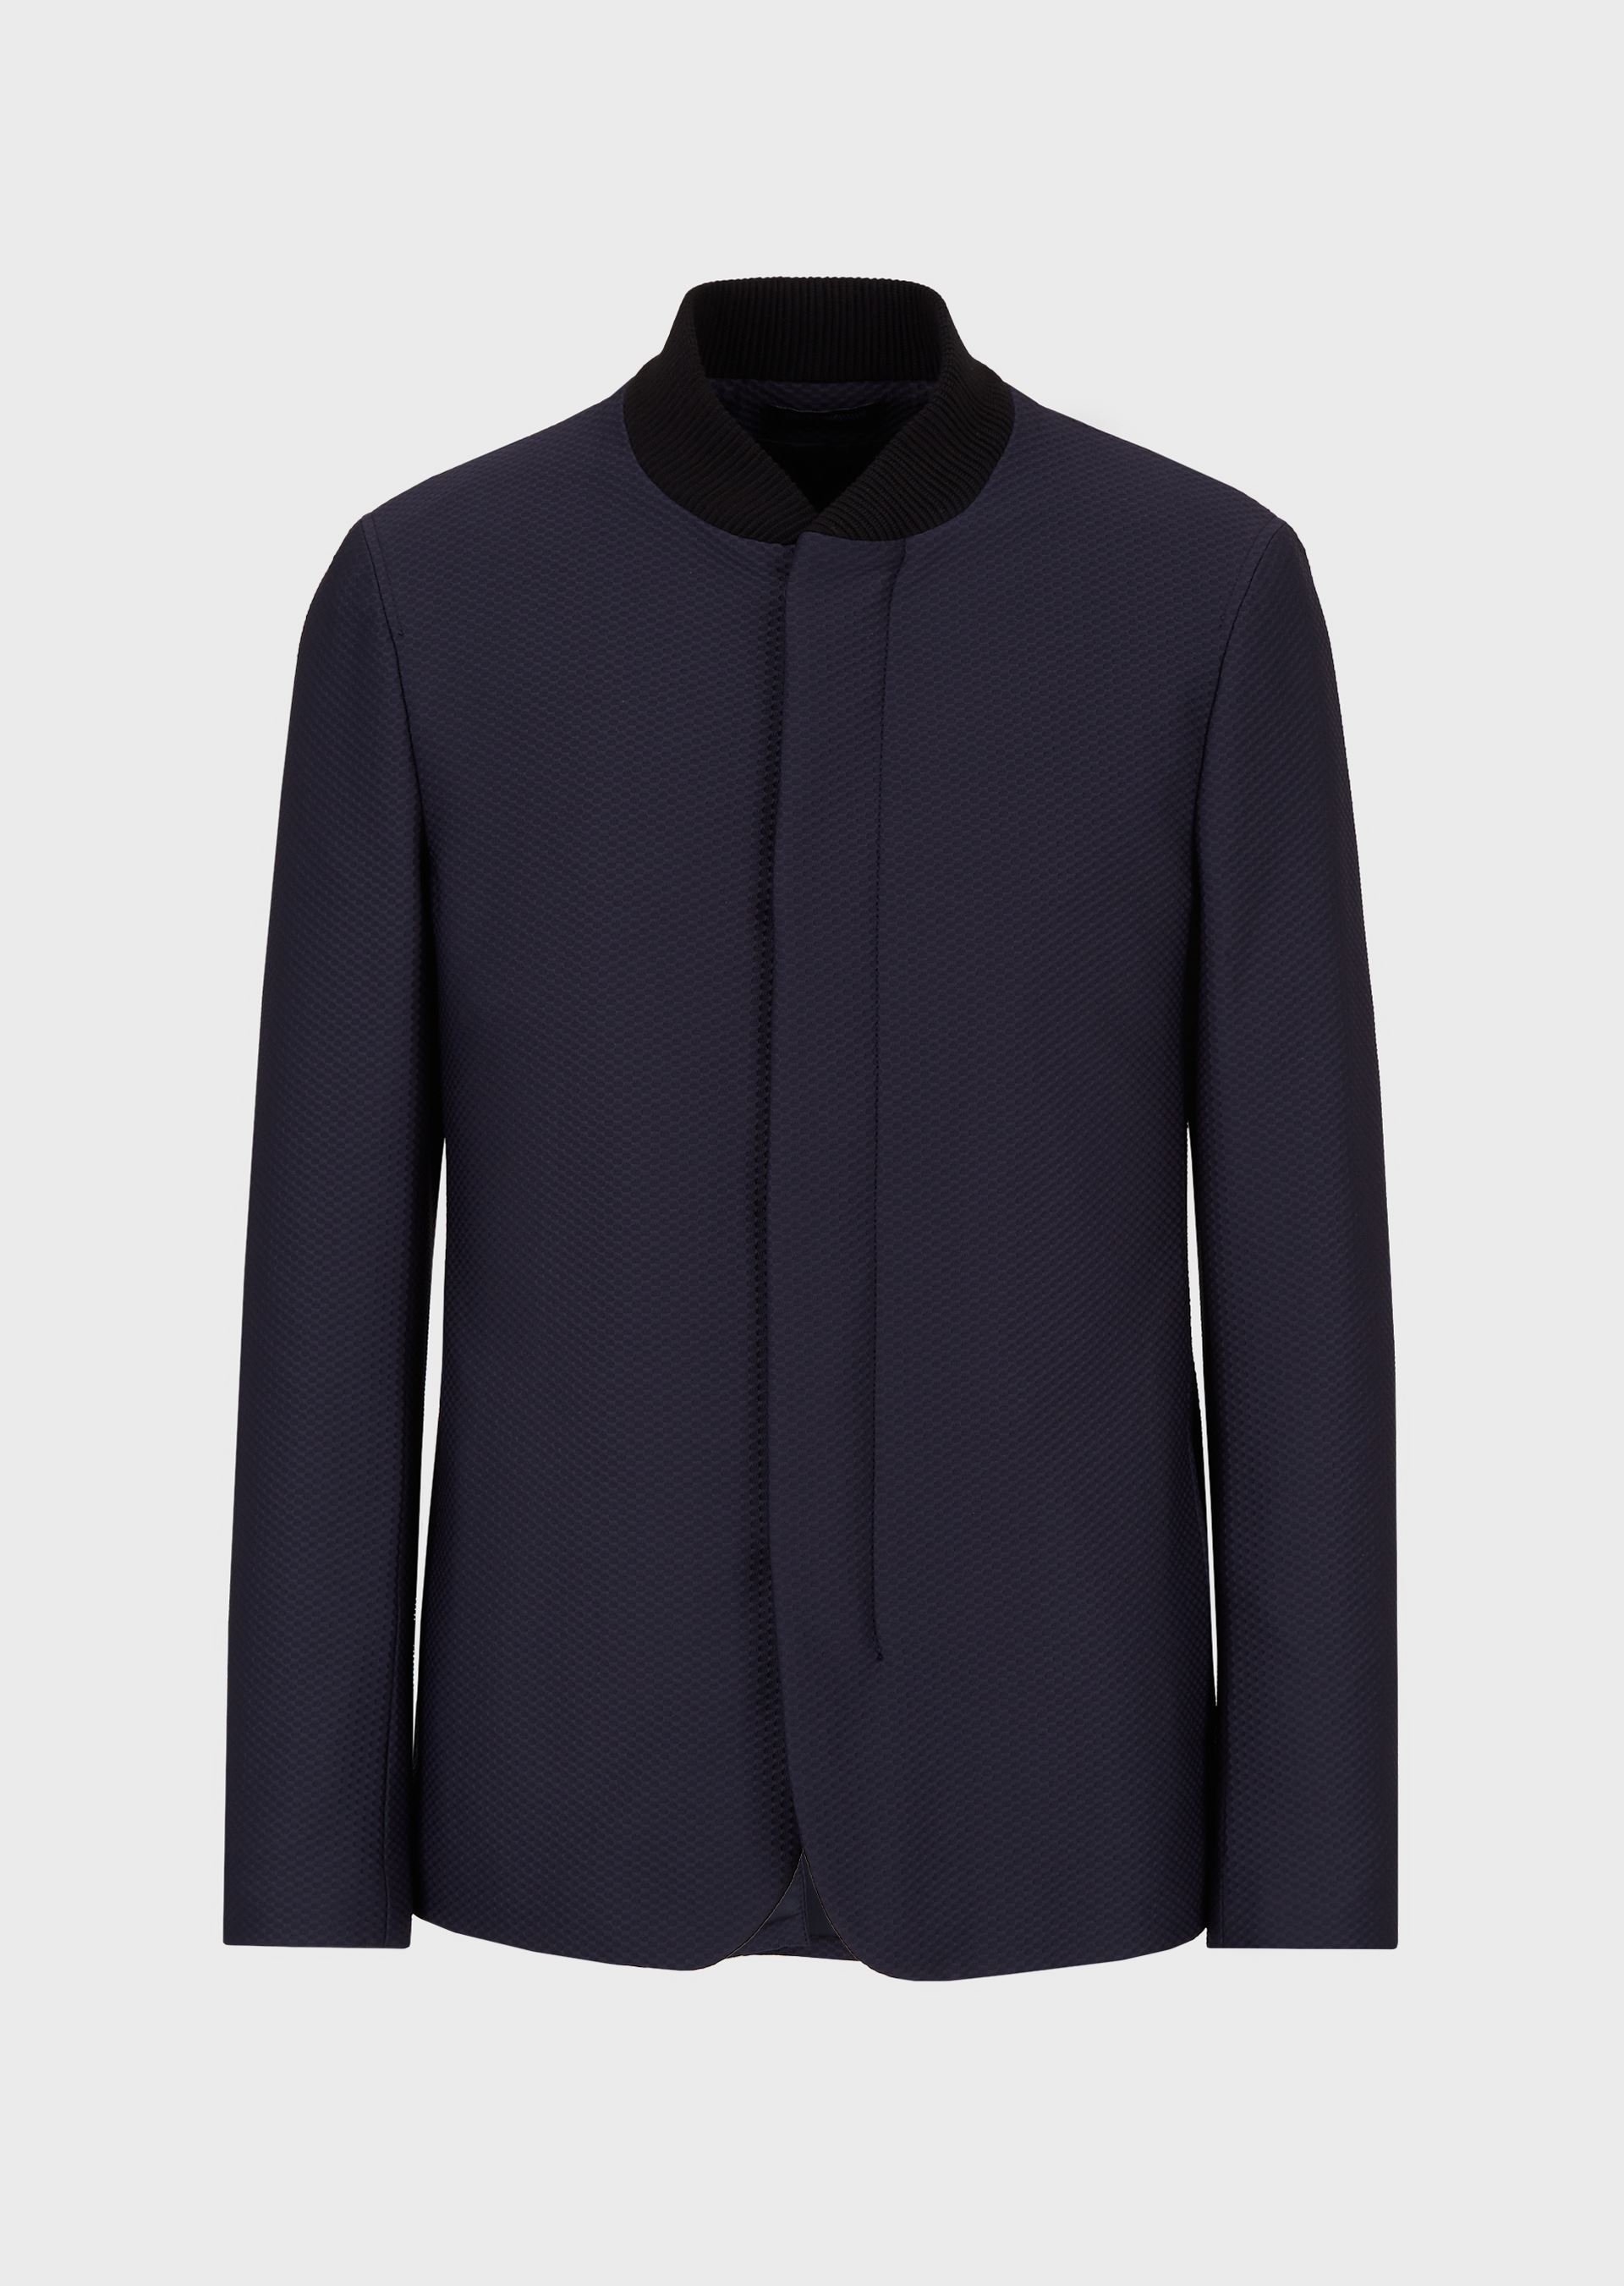 EMPORIO ARMANI Jacket with Nehru collar in 3D-textured fabric